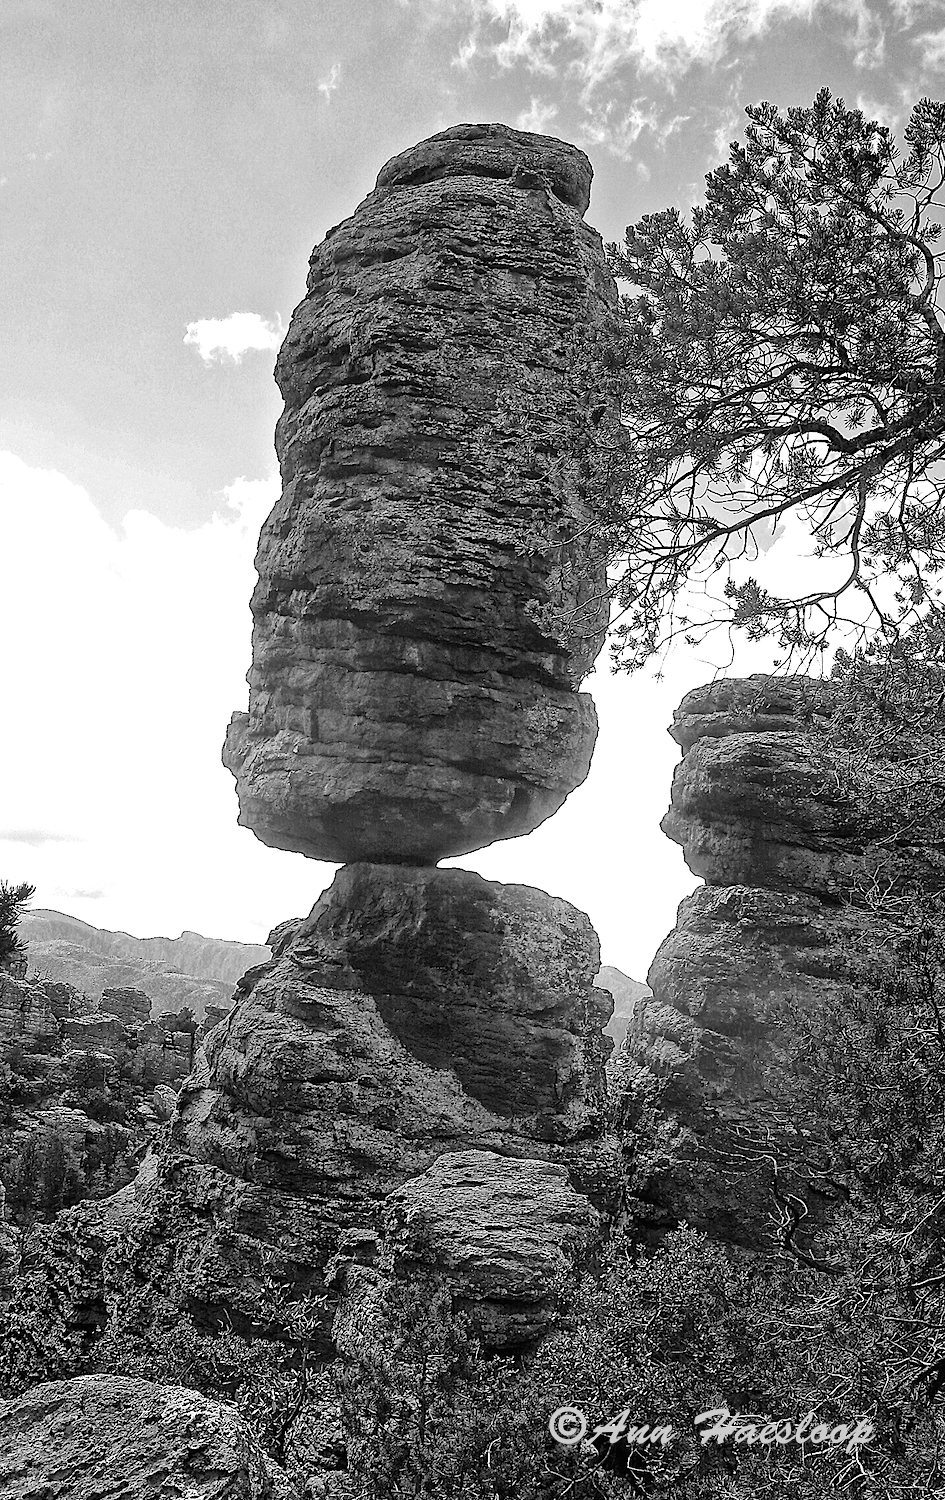 An outlined image of Balanced Rock. Actually, there are many such rocks in the Chiricahuas. But this must be the big cahuna of balanced rocks!